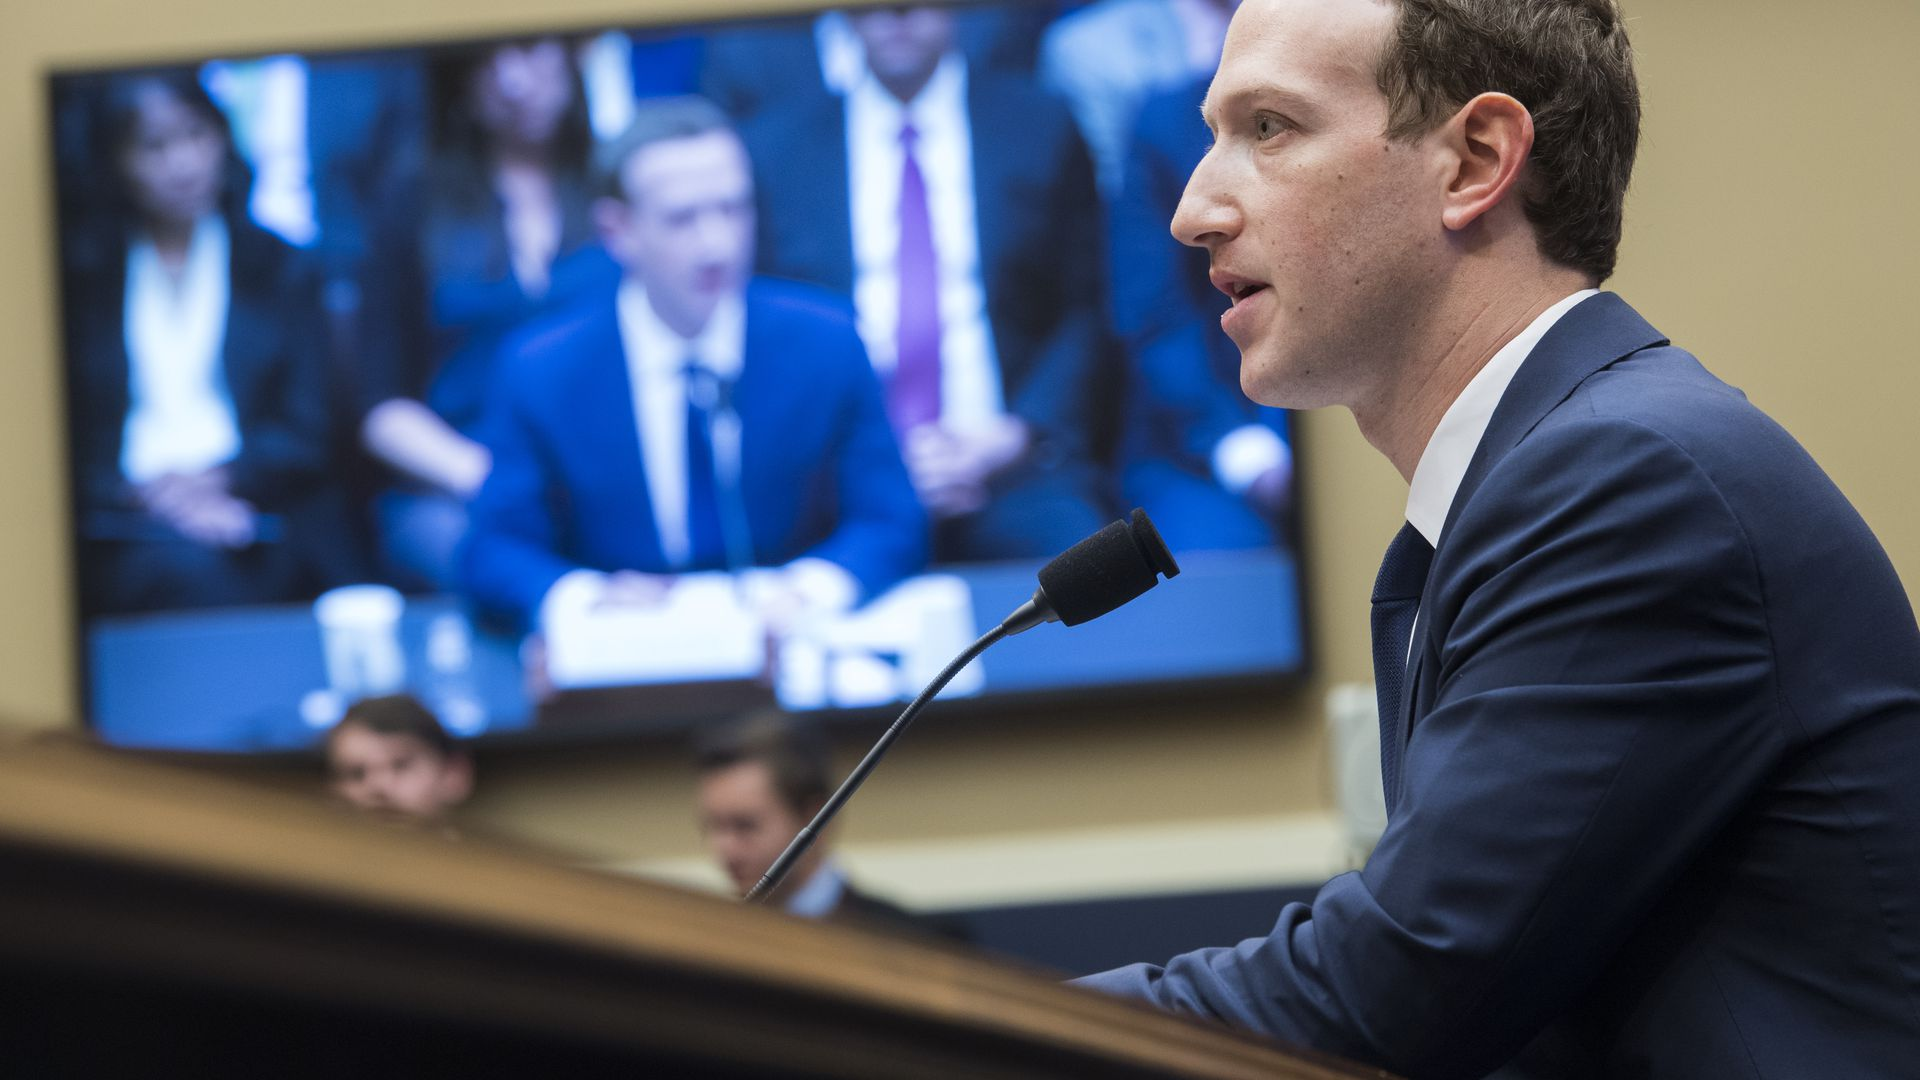 Zuckerberg responds to criticism after major New York Times story